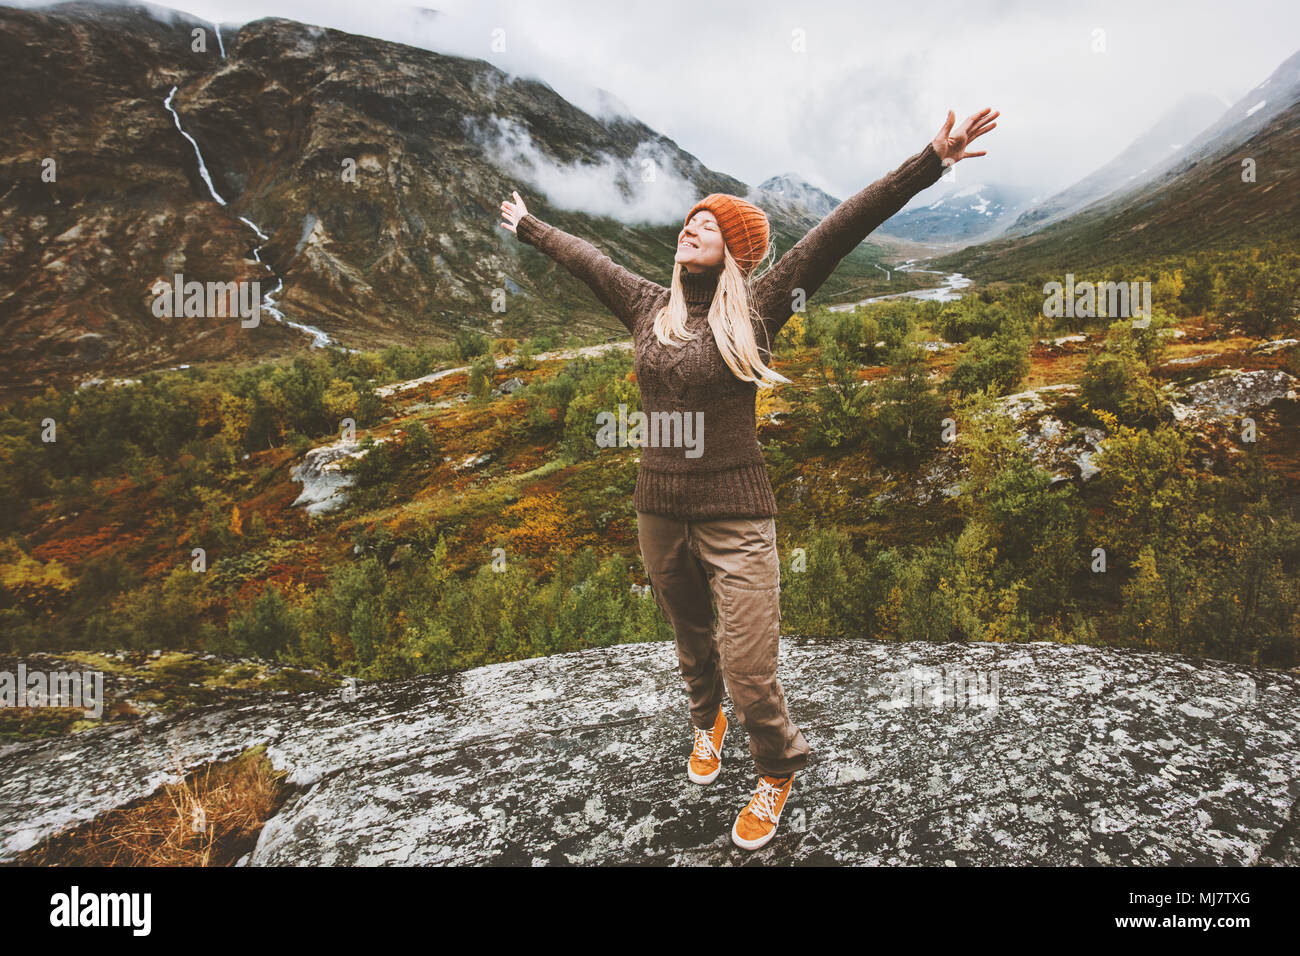 Happy woman traveler soulevées mains marche dans les montagnes de la forêt de l'aventure voyage concept de vie sain vacations Photo Stock